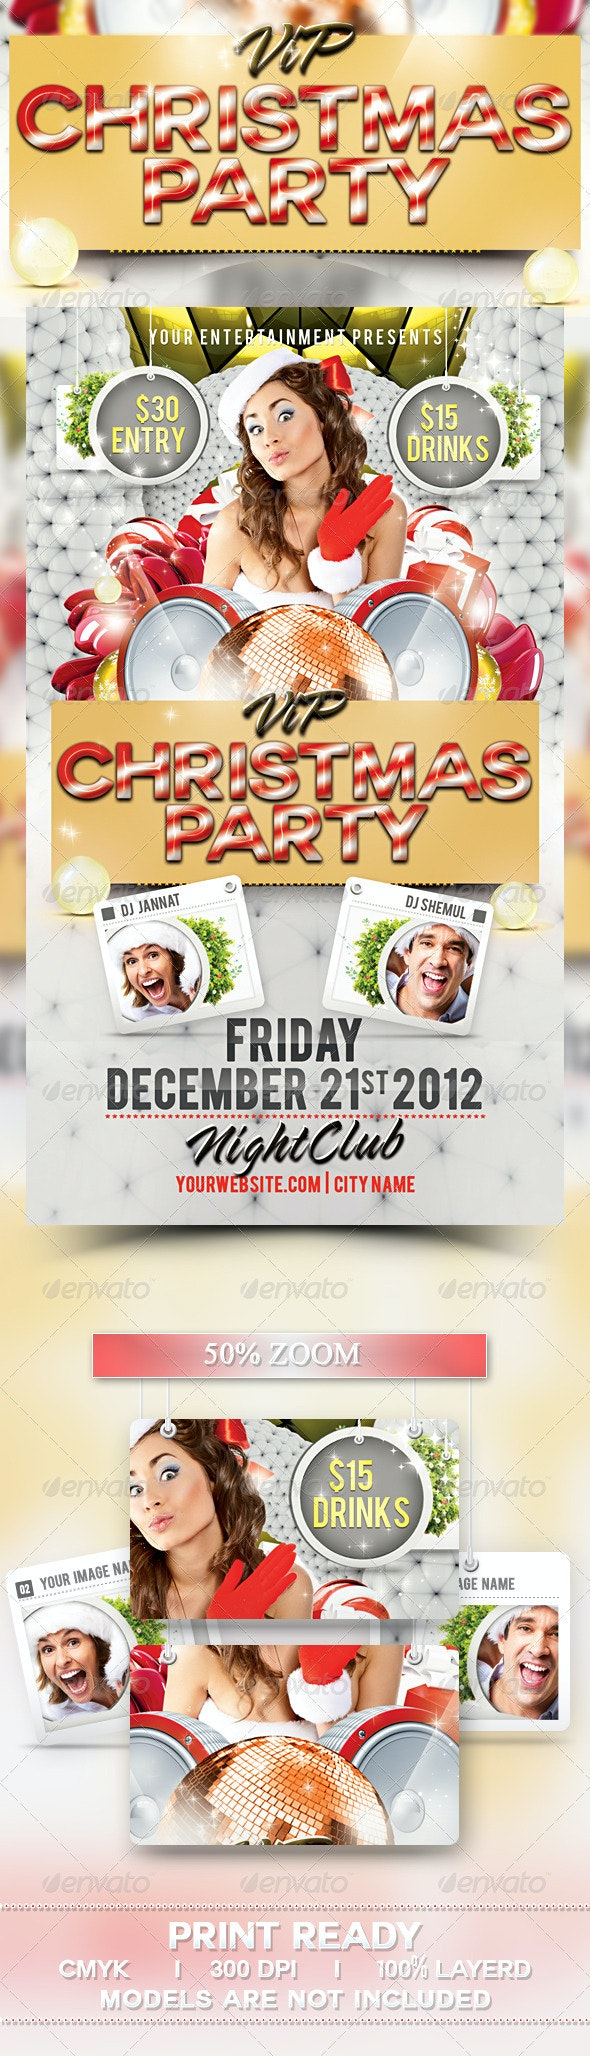 VIP Christmas Party Flyer Template - Clubs & Parties Events